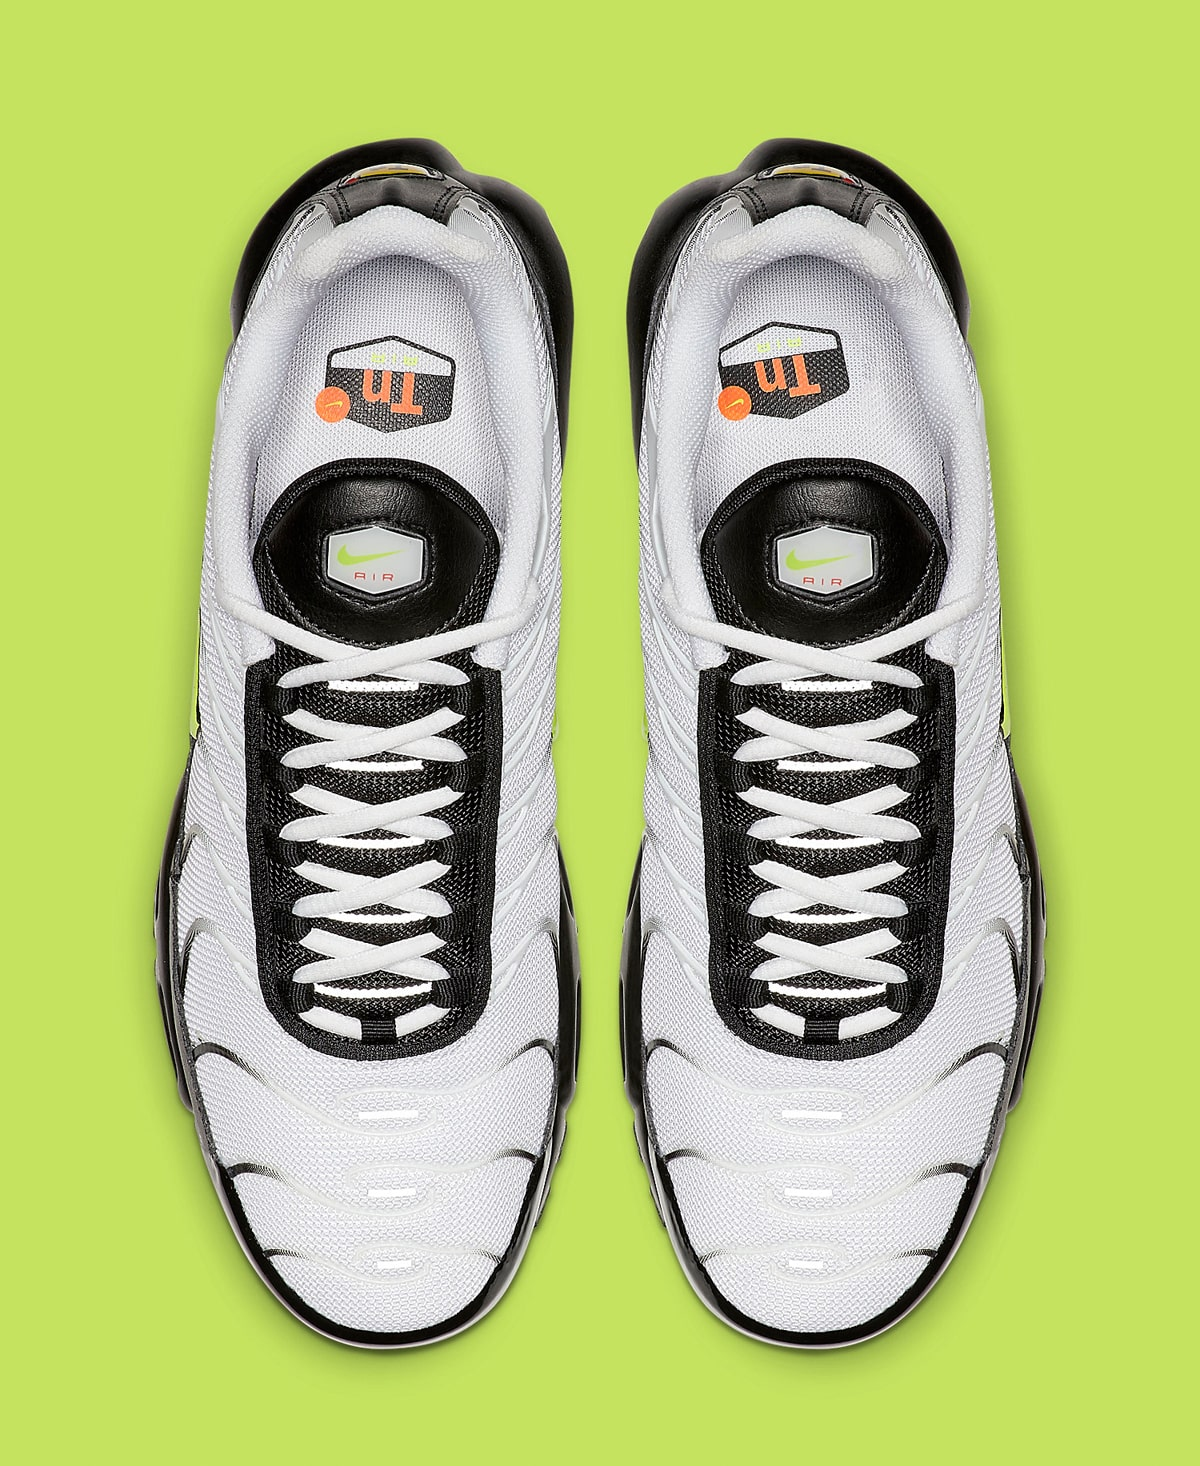 589f749a8f Nike's Tuned Air Turns Up Toned Down - HOUSE OF HEAT | Sneaker ...